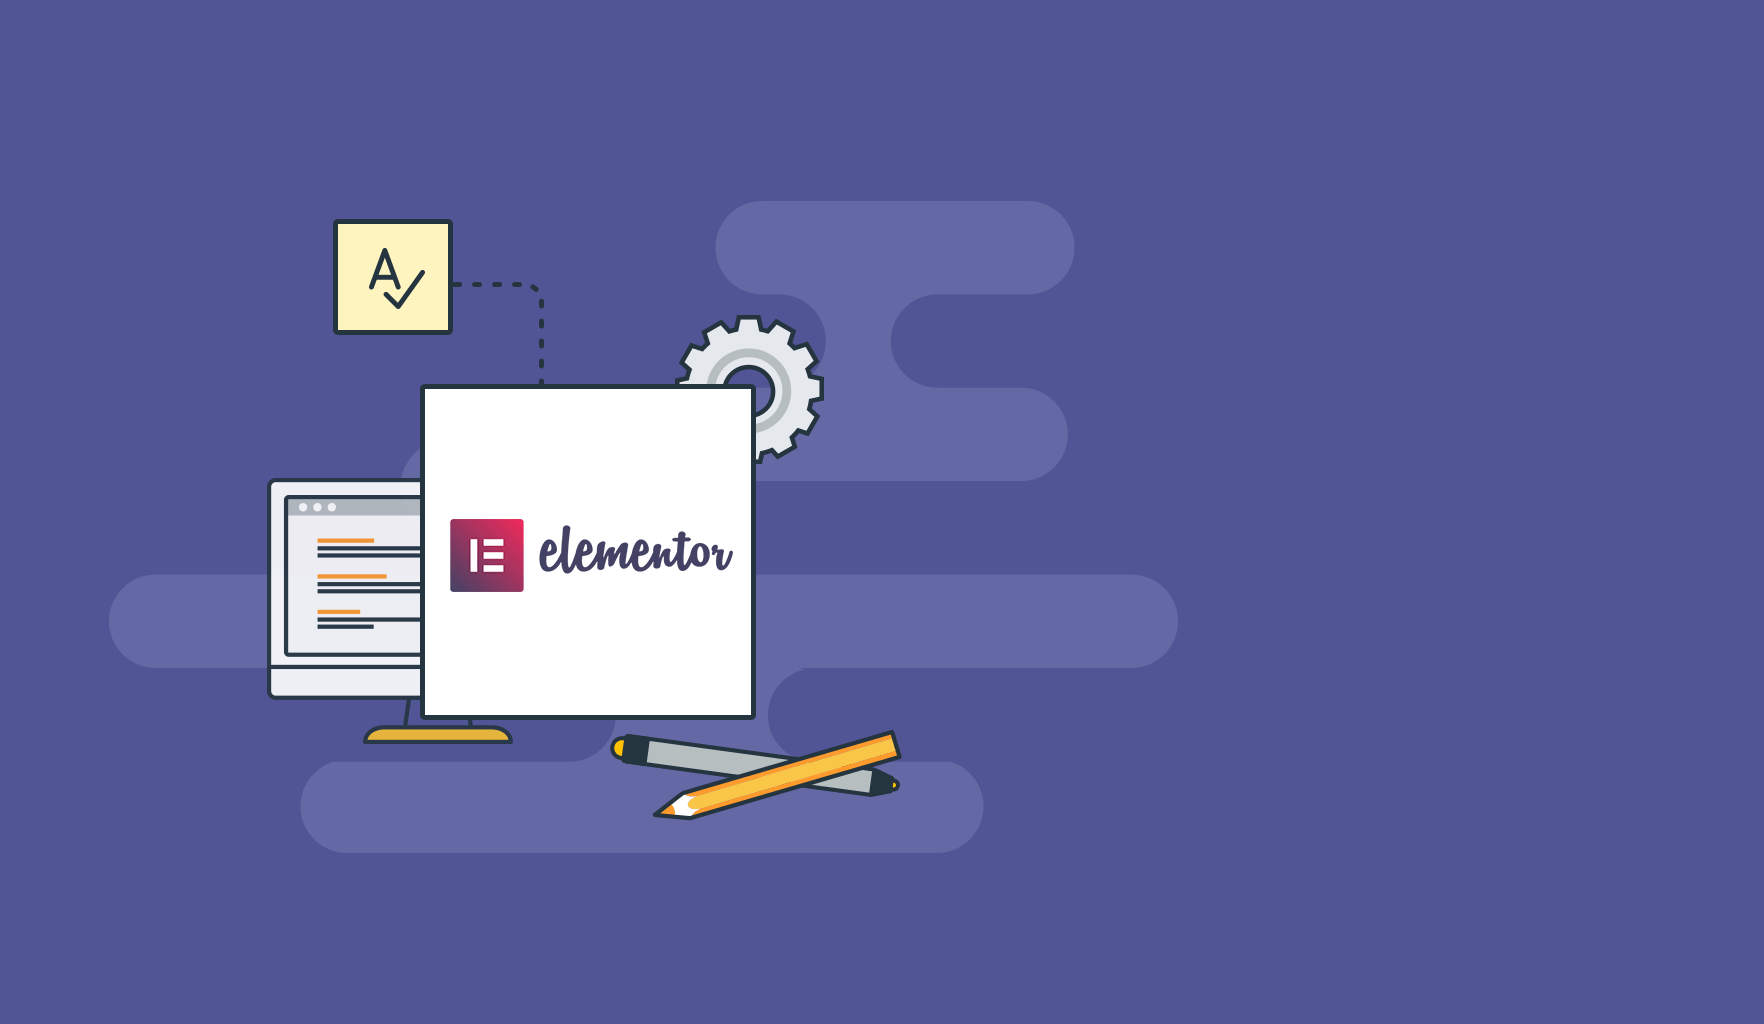 Elementor Review 2019 - Pros, Cons, Pricing and Comparison